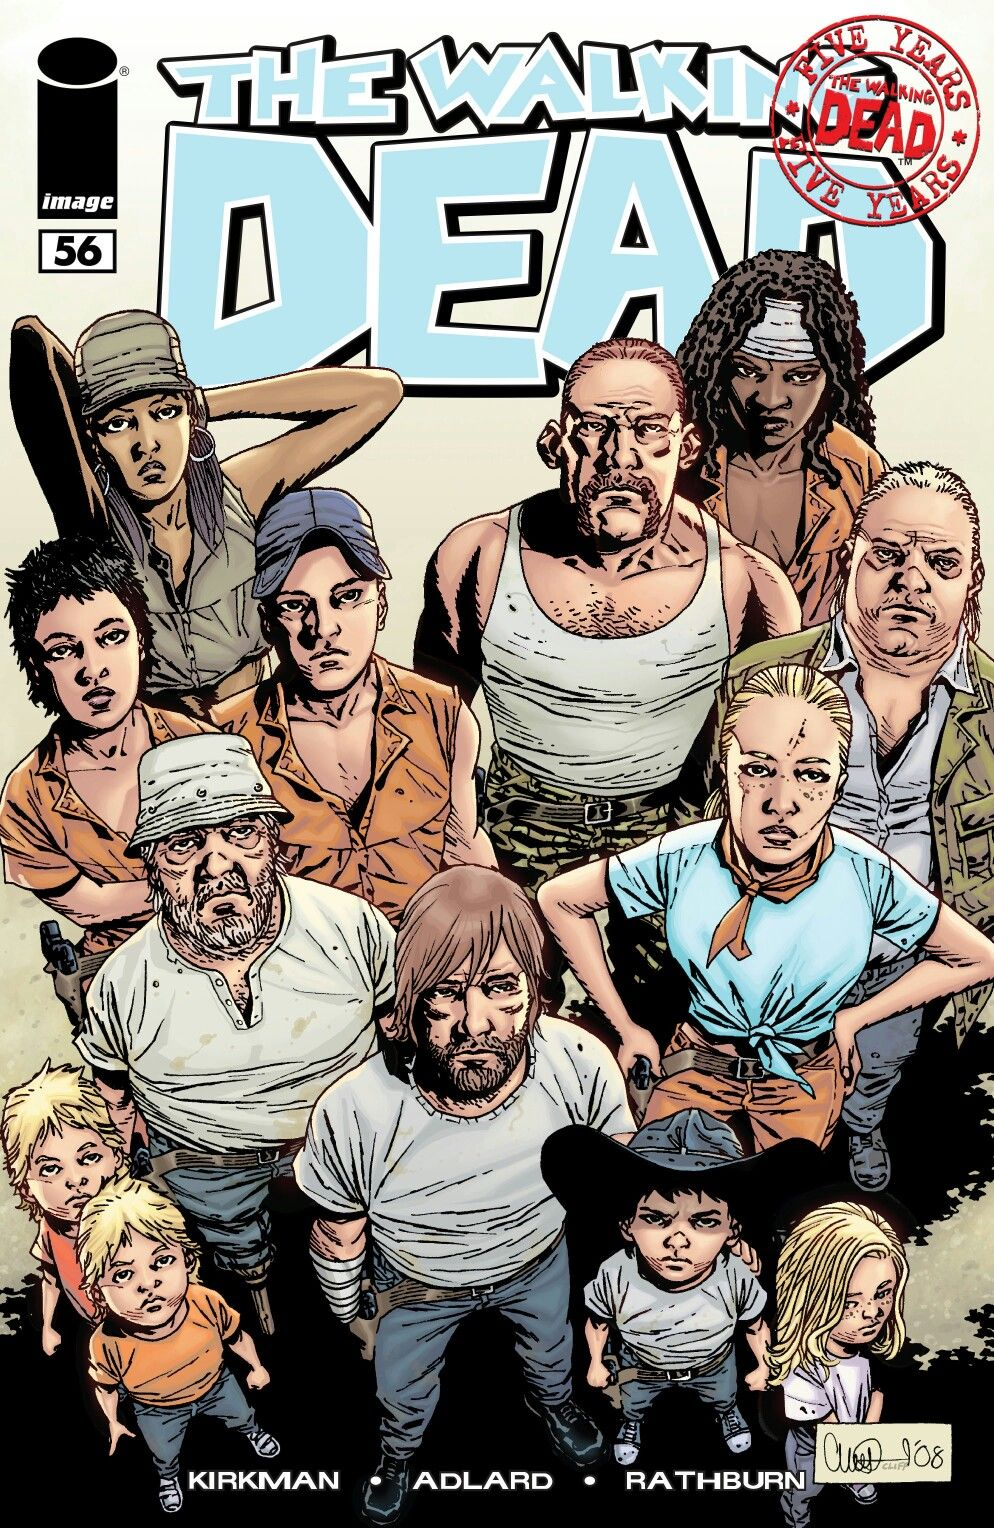 Walking dead issue 67 online dating 4